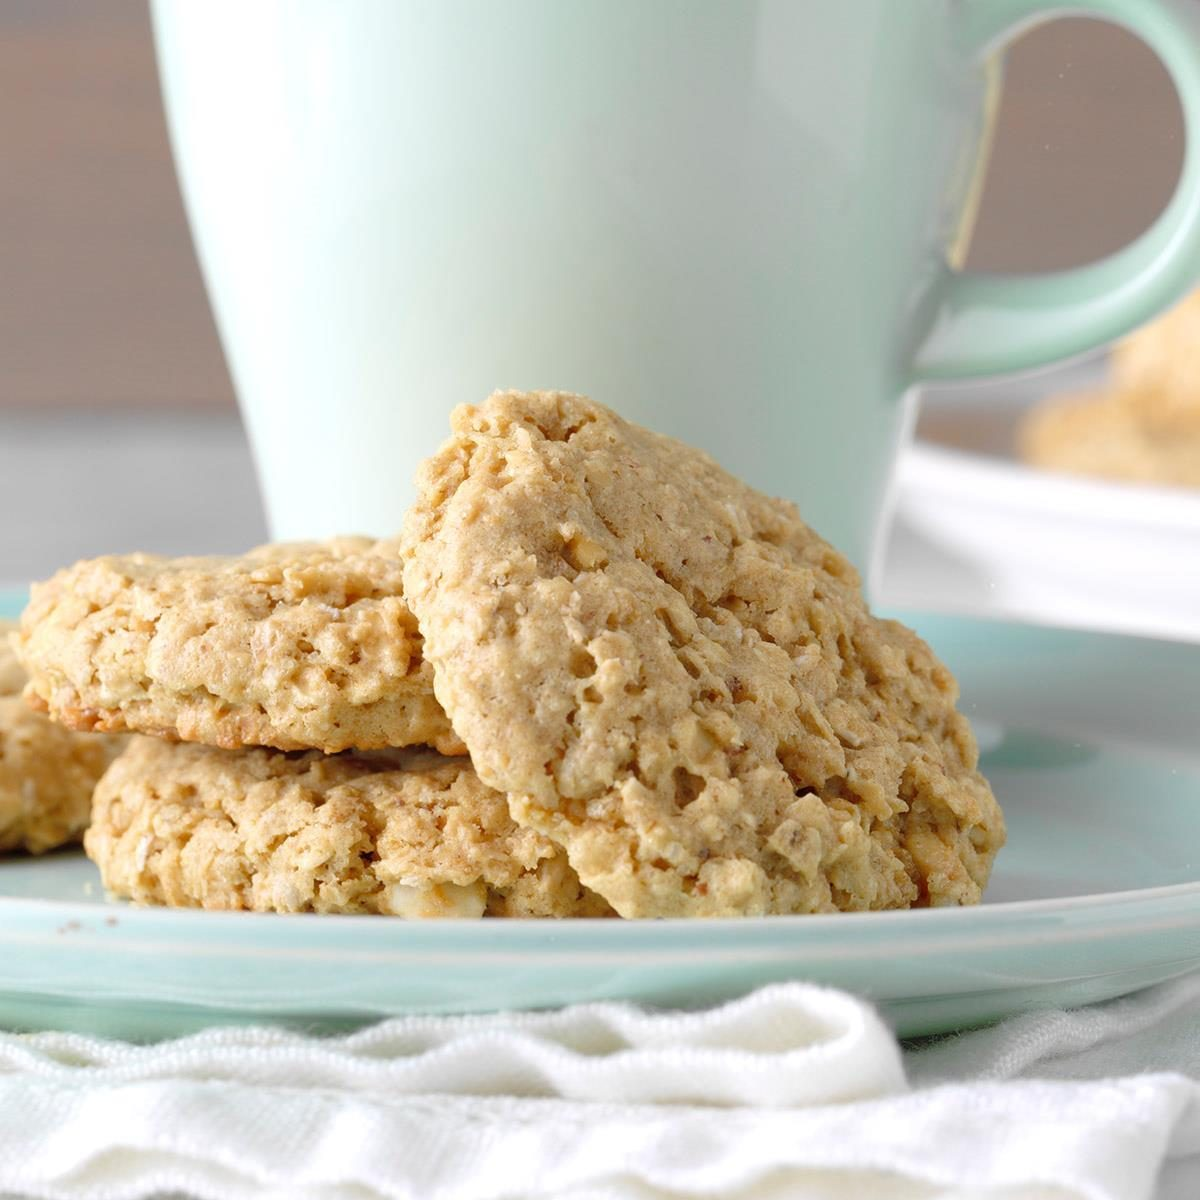 Easy Peanut Butter Oatmeal Cookies